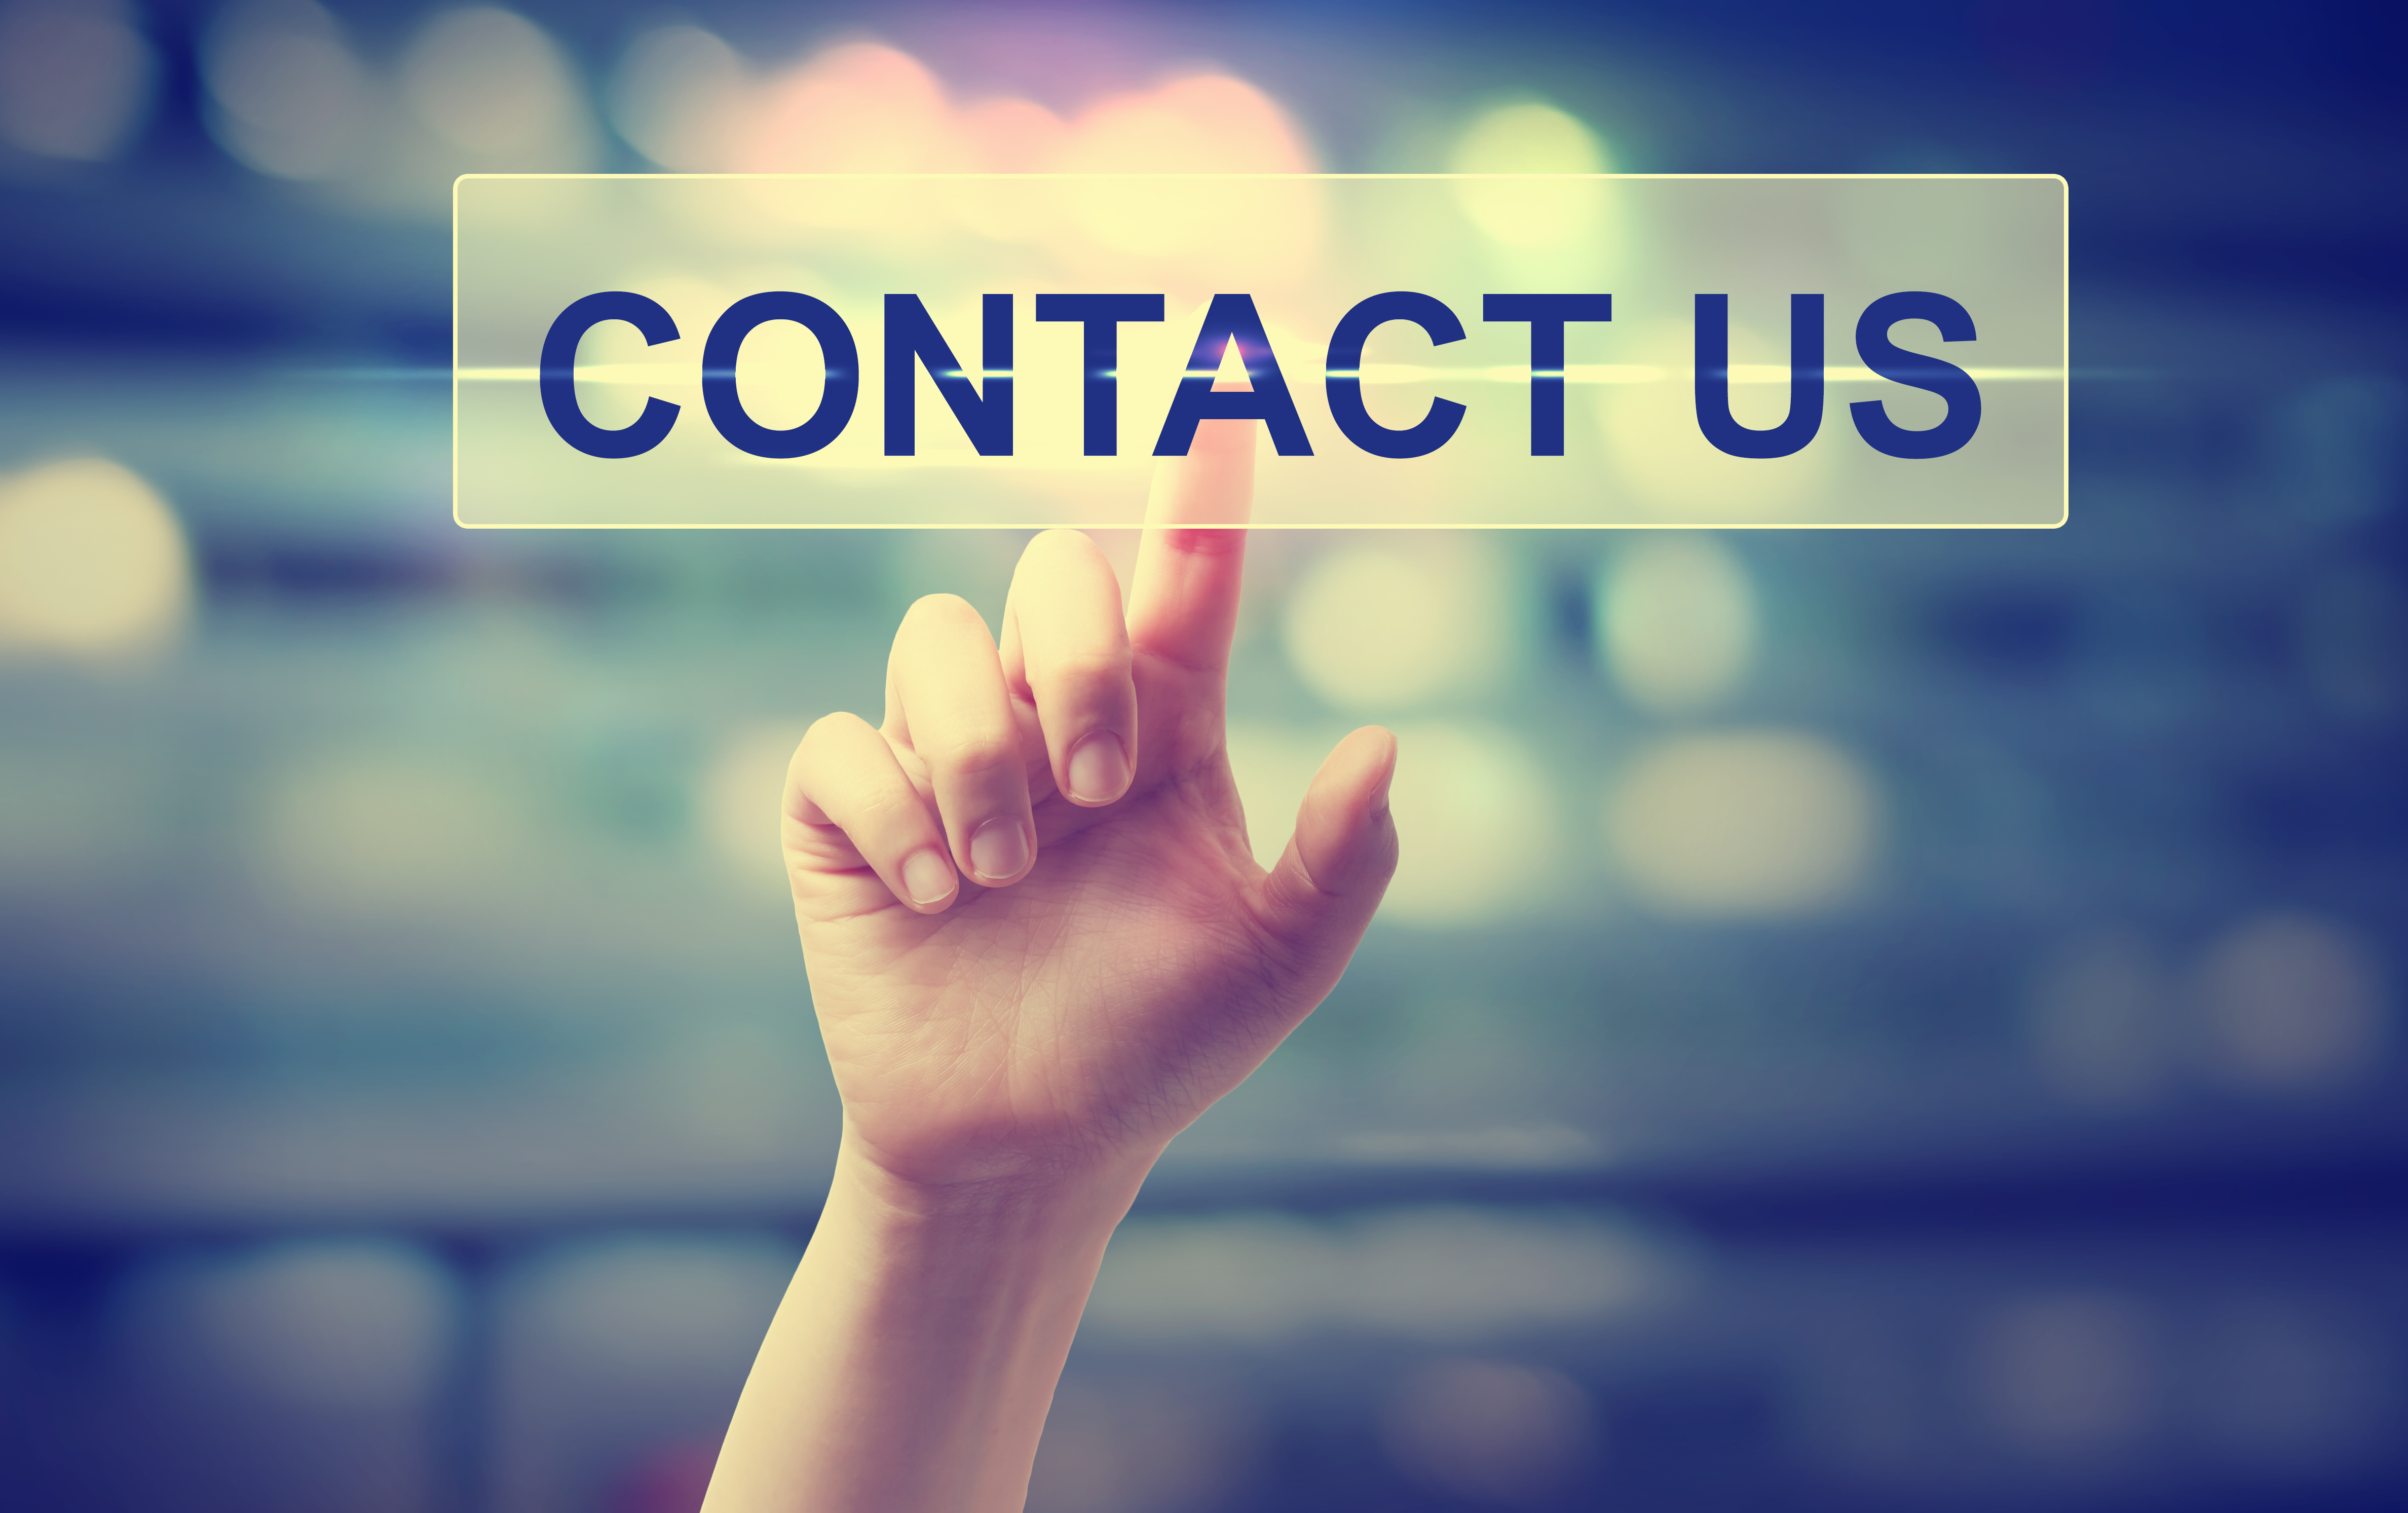 Firmax - Contact Us